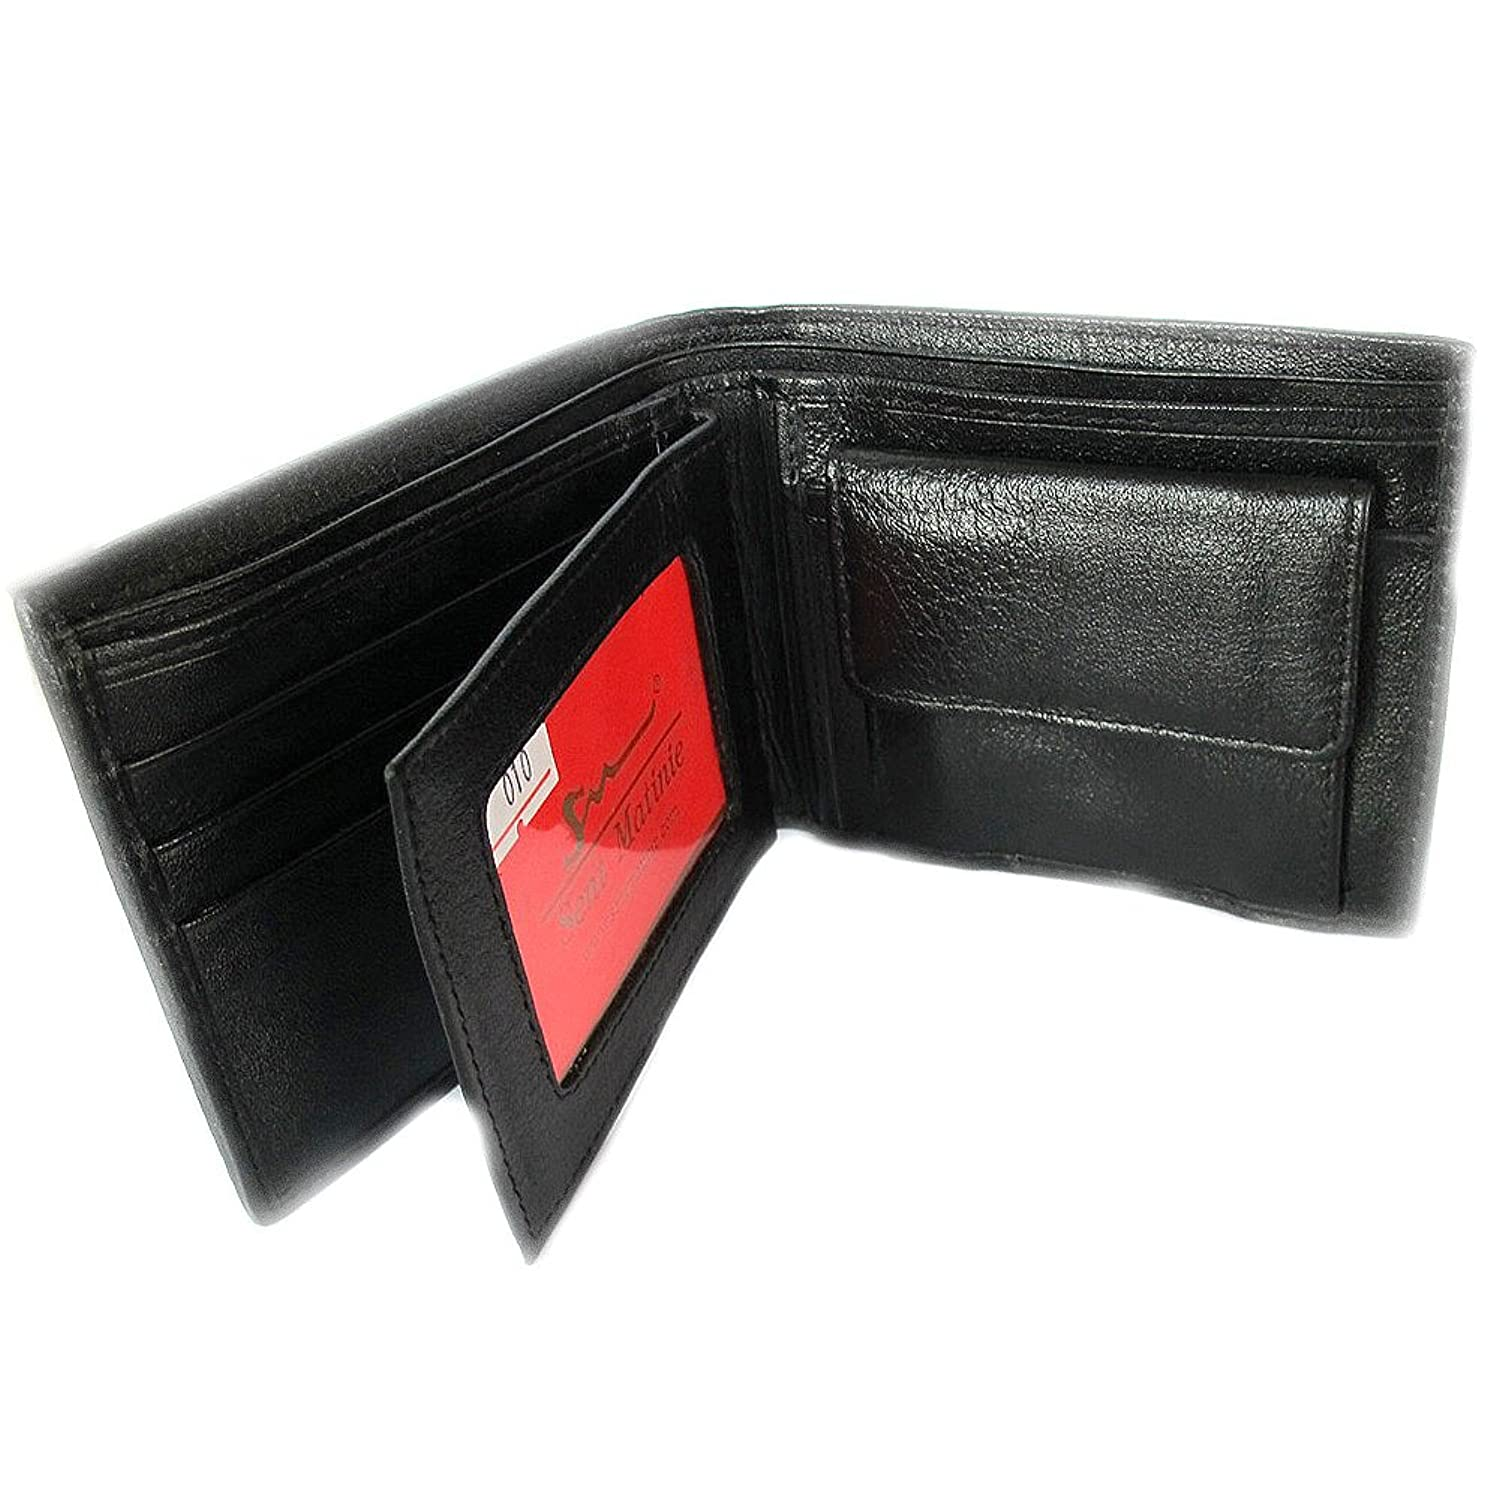 """HelloBangkok""BEAUTIFUL GENUINE HEAD HOOD COBRA BIFOLD WALLET IN WHITE AND BLACK COLOR 3 COMPRATMENT OF BANK NOTE 1 WITH ZIPPED 3 CREDIT CARD 1 COIN POKKET 2 WINDOW FOR ID CARD"